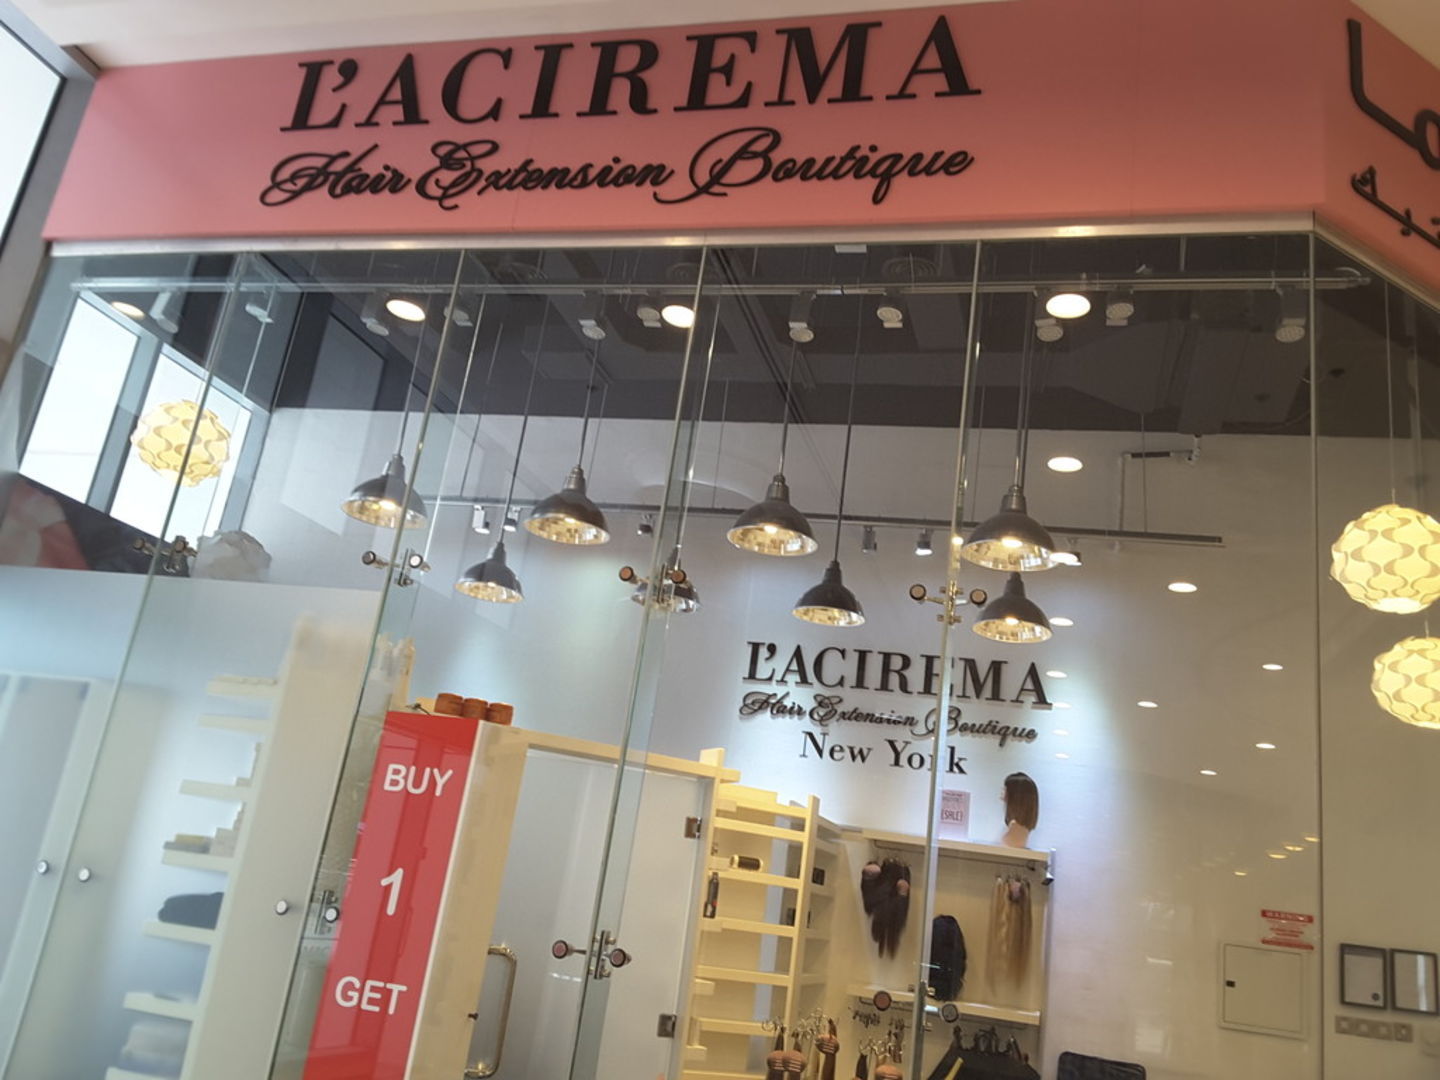 Lacirema Hair Extensions Boutique Beauty Cosmetics Stores In